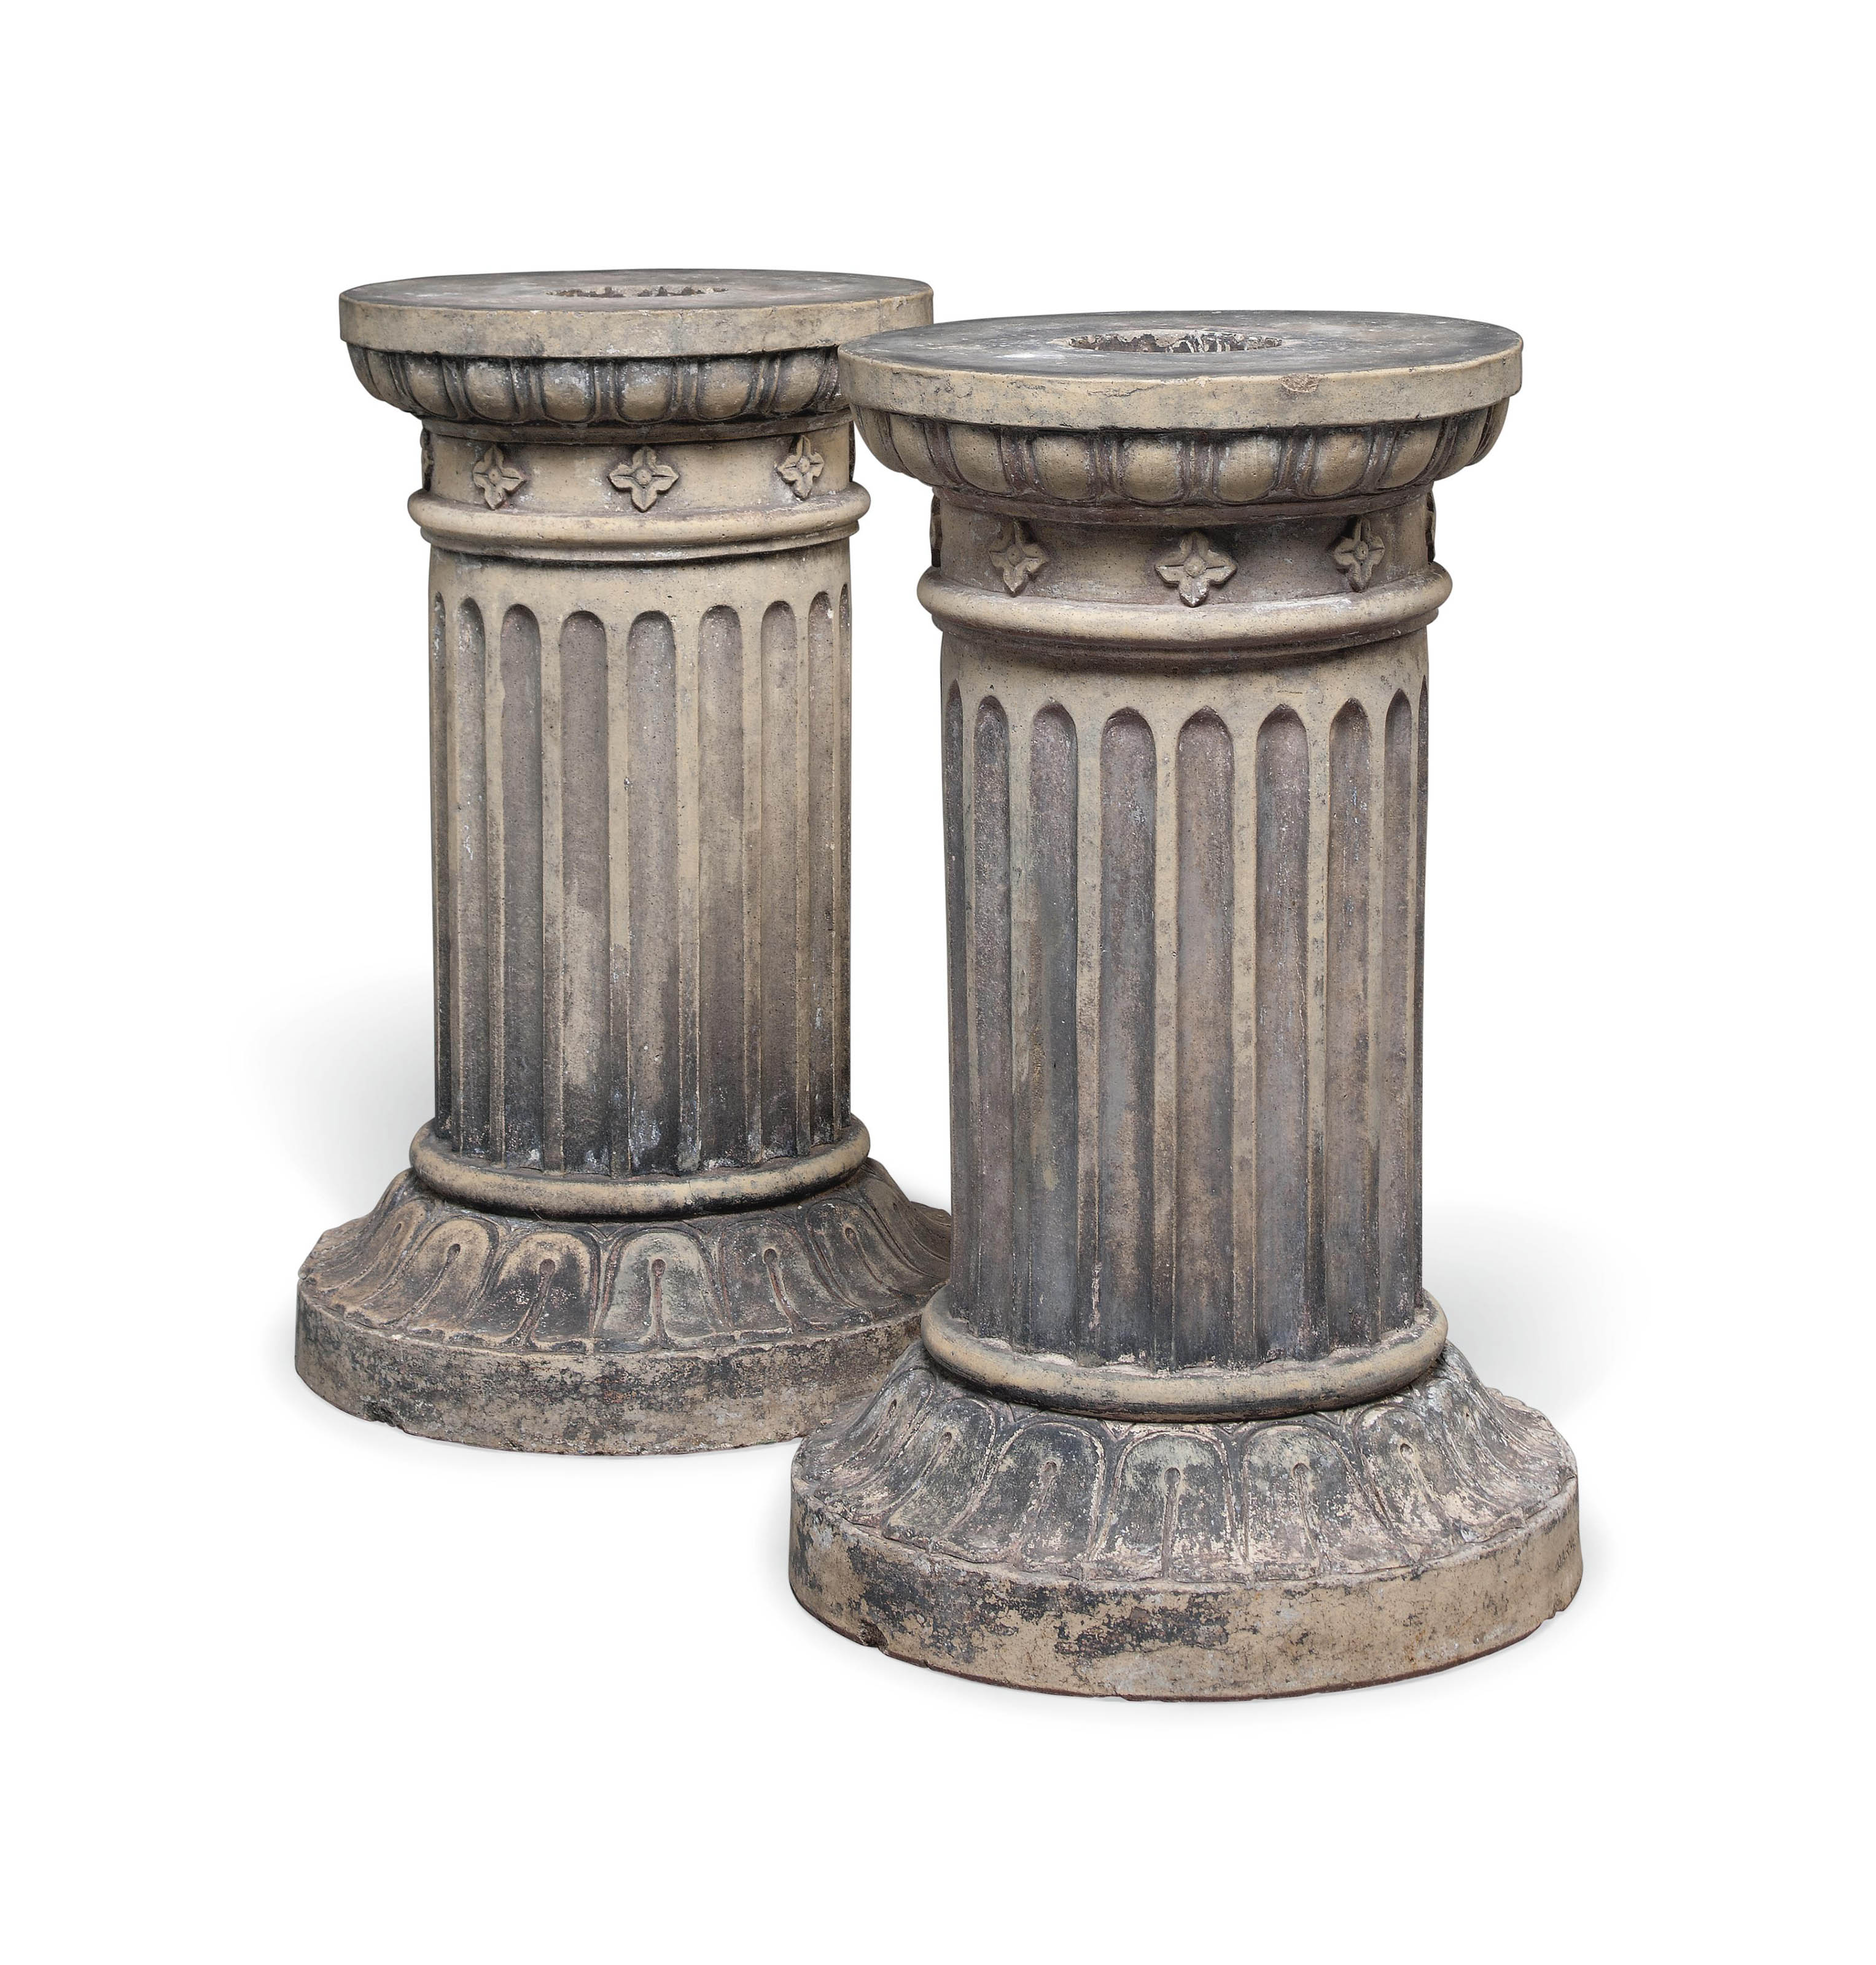 A PAIR OF SCOTTISH FLUTED TERRACOTTA PEDESTALS